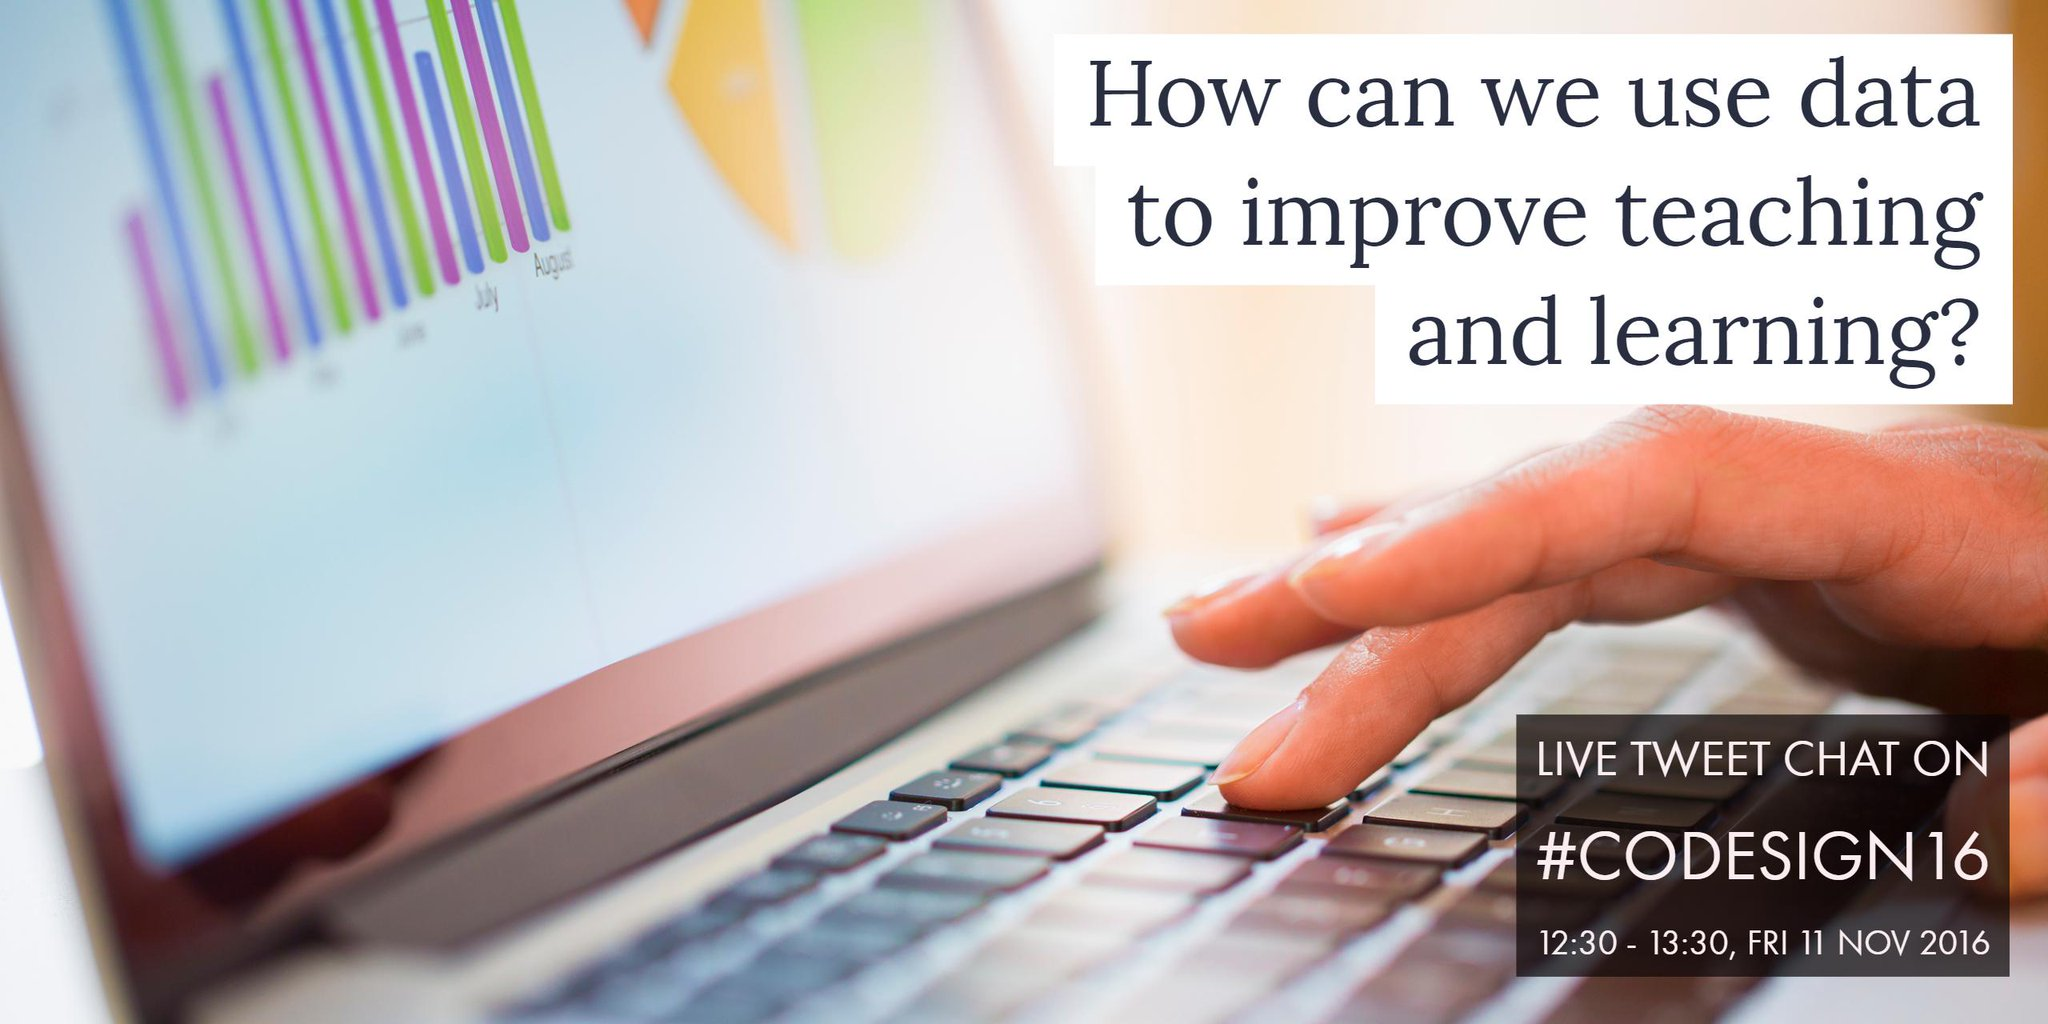 How can we use data to improve teaching & learning? Join our live tweet chat tomorrow 12:30 to discuss! https://t.co/HL3RusTafw #codesign16 https://t.co/SEIkXmcIht